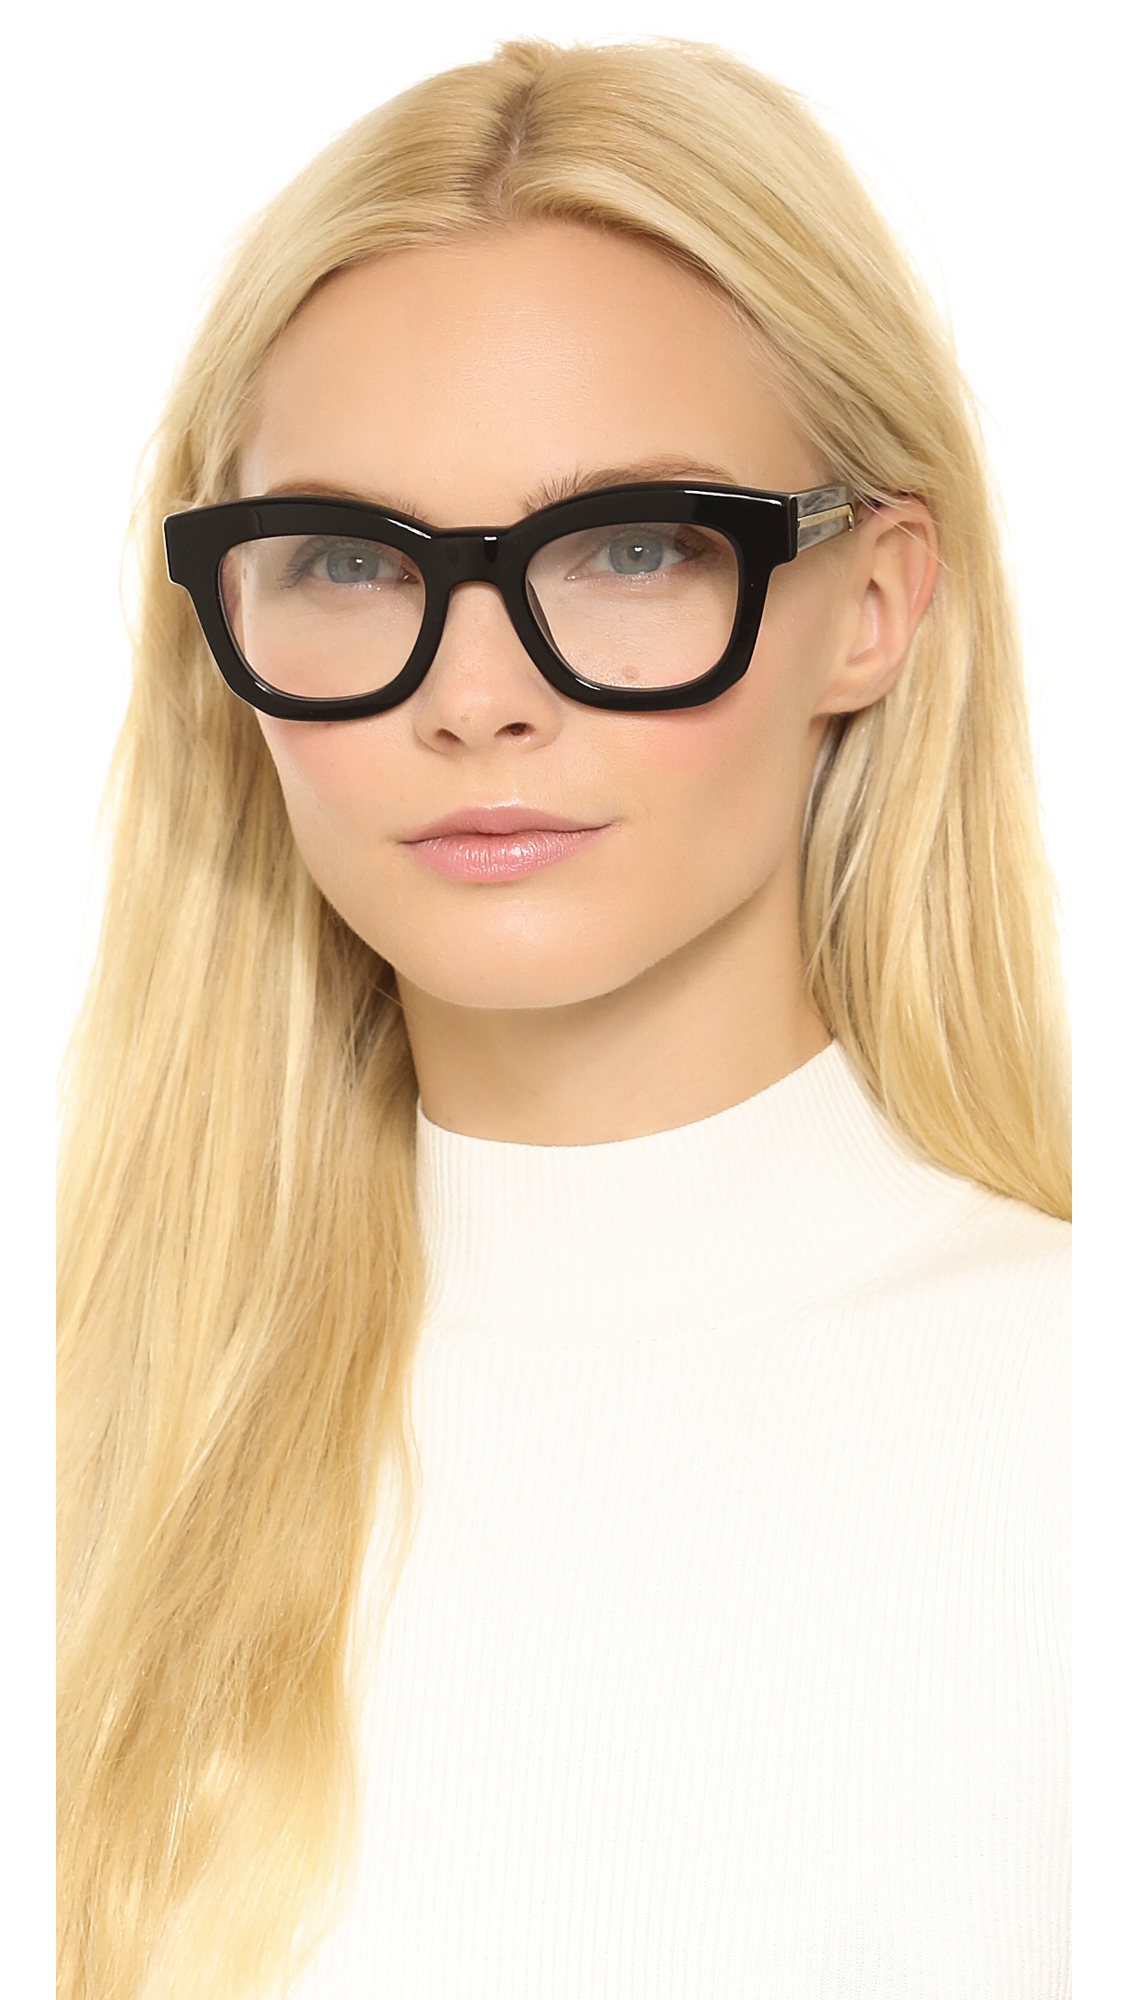 Lyst - Stella Mccartney Thick Frame Glasses